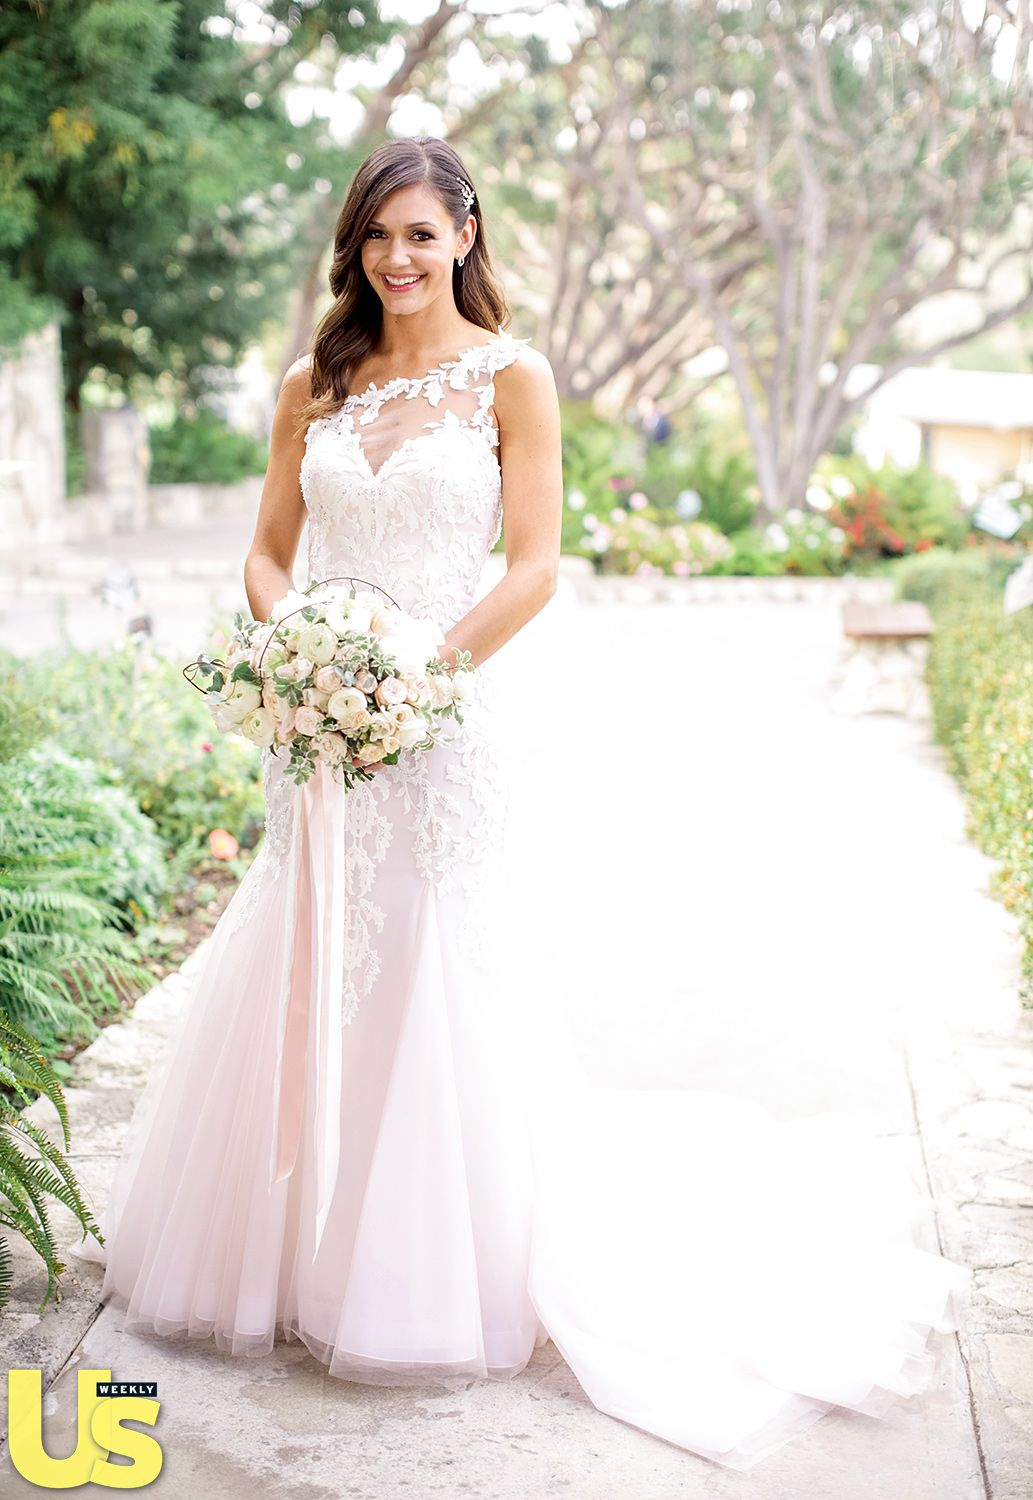 Desiree Hartsock Already Had A Clear Vision Of Her Perfect Wedding Look There Would Be